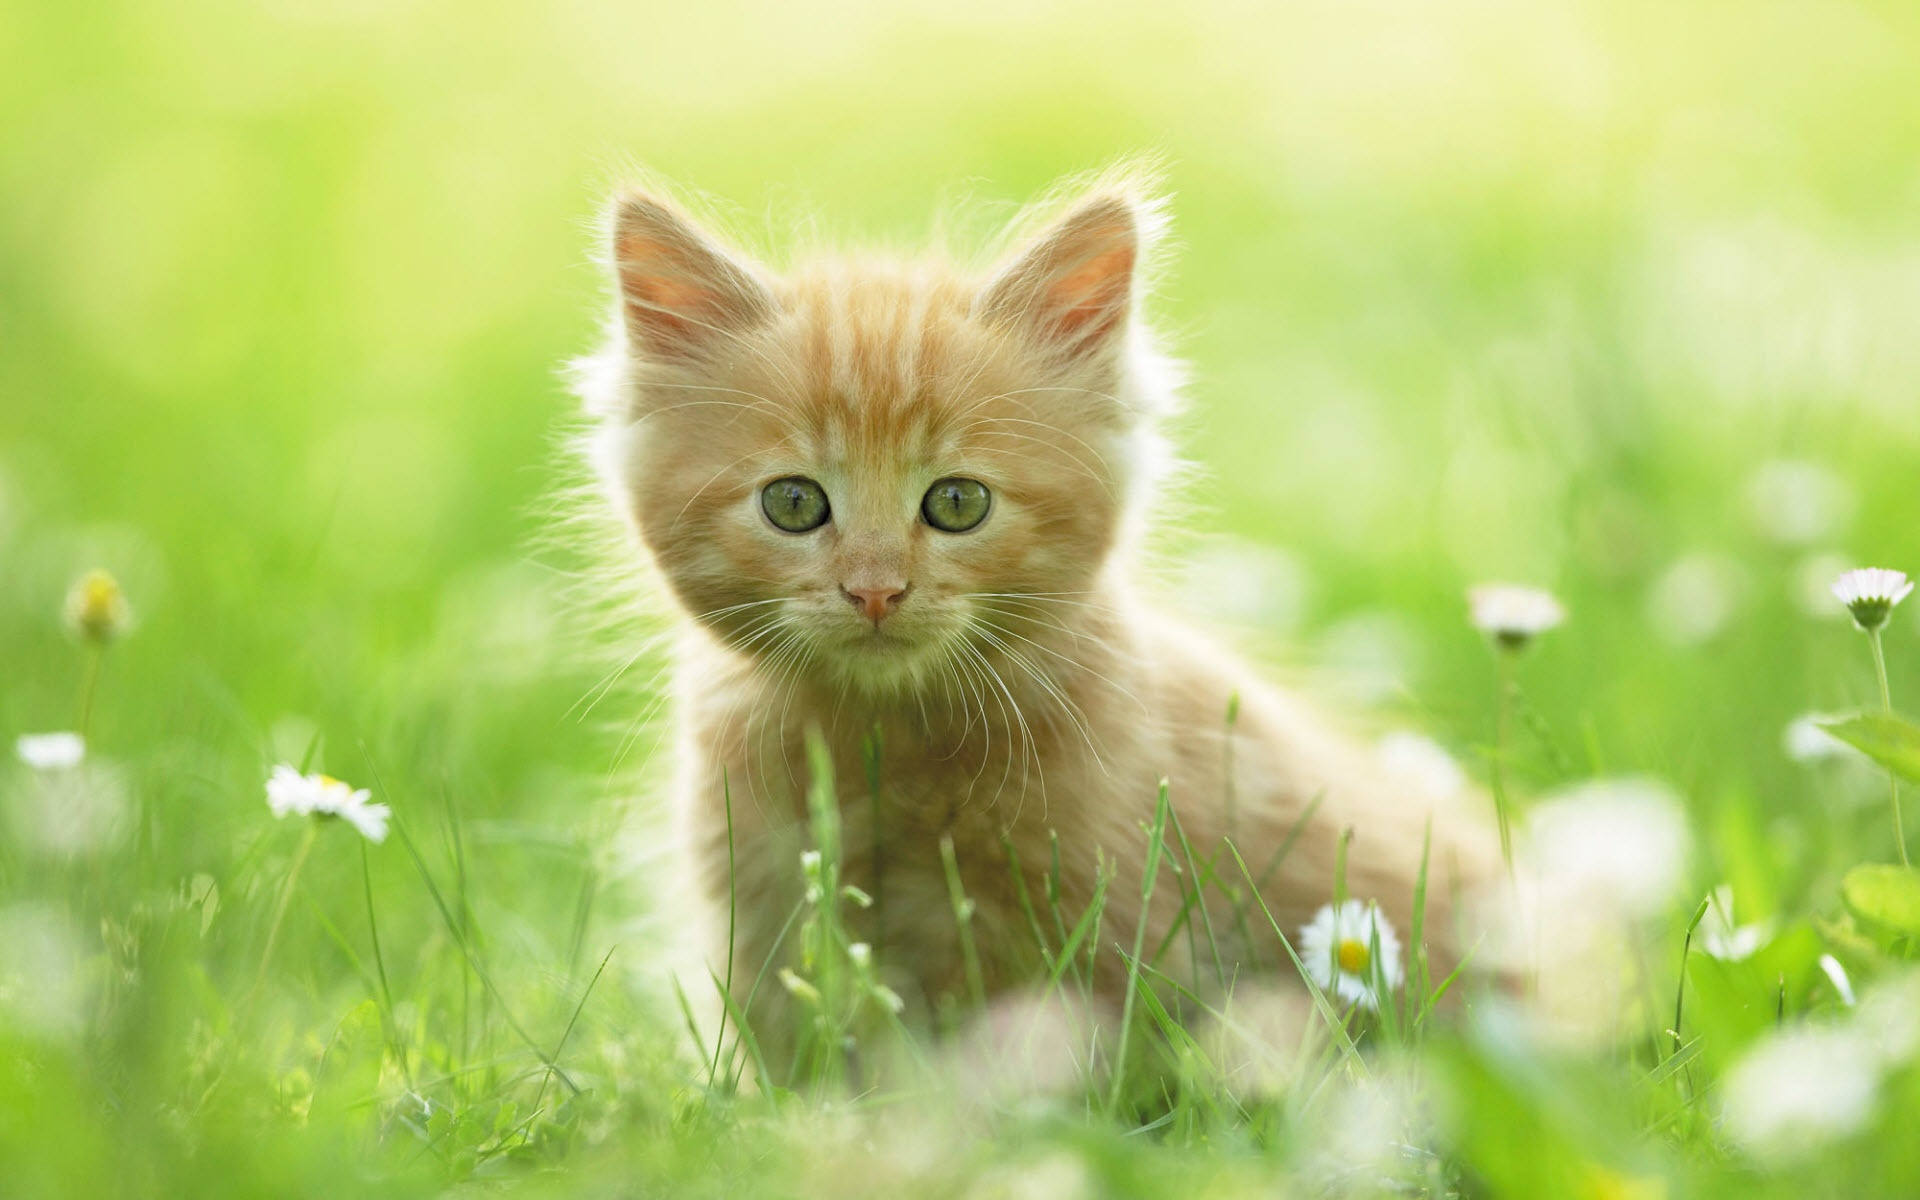 1920x1200 Cute kitten desktop PC and Mac wallpaper 1920x1200